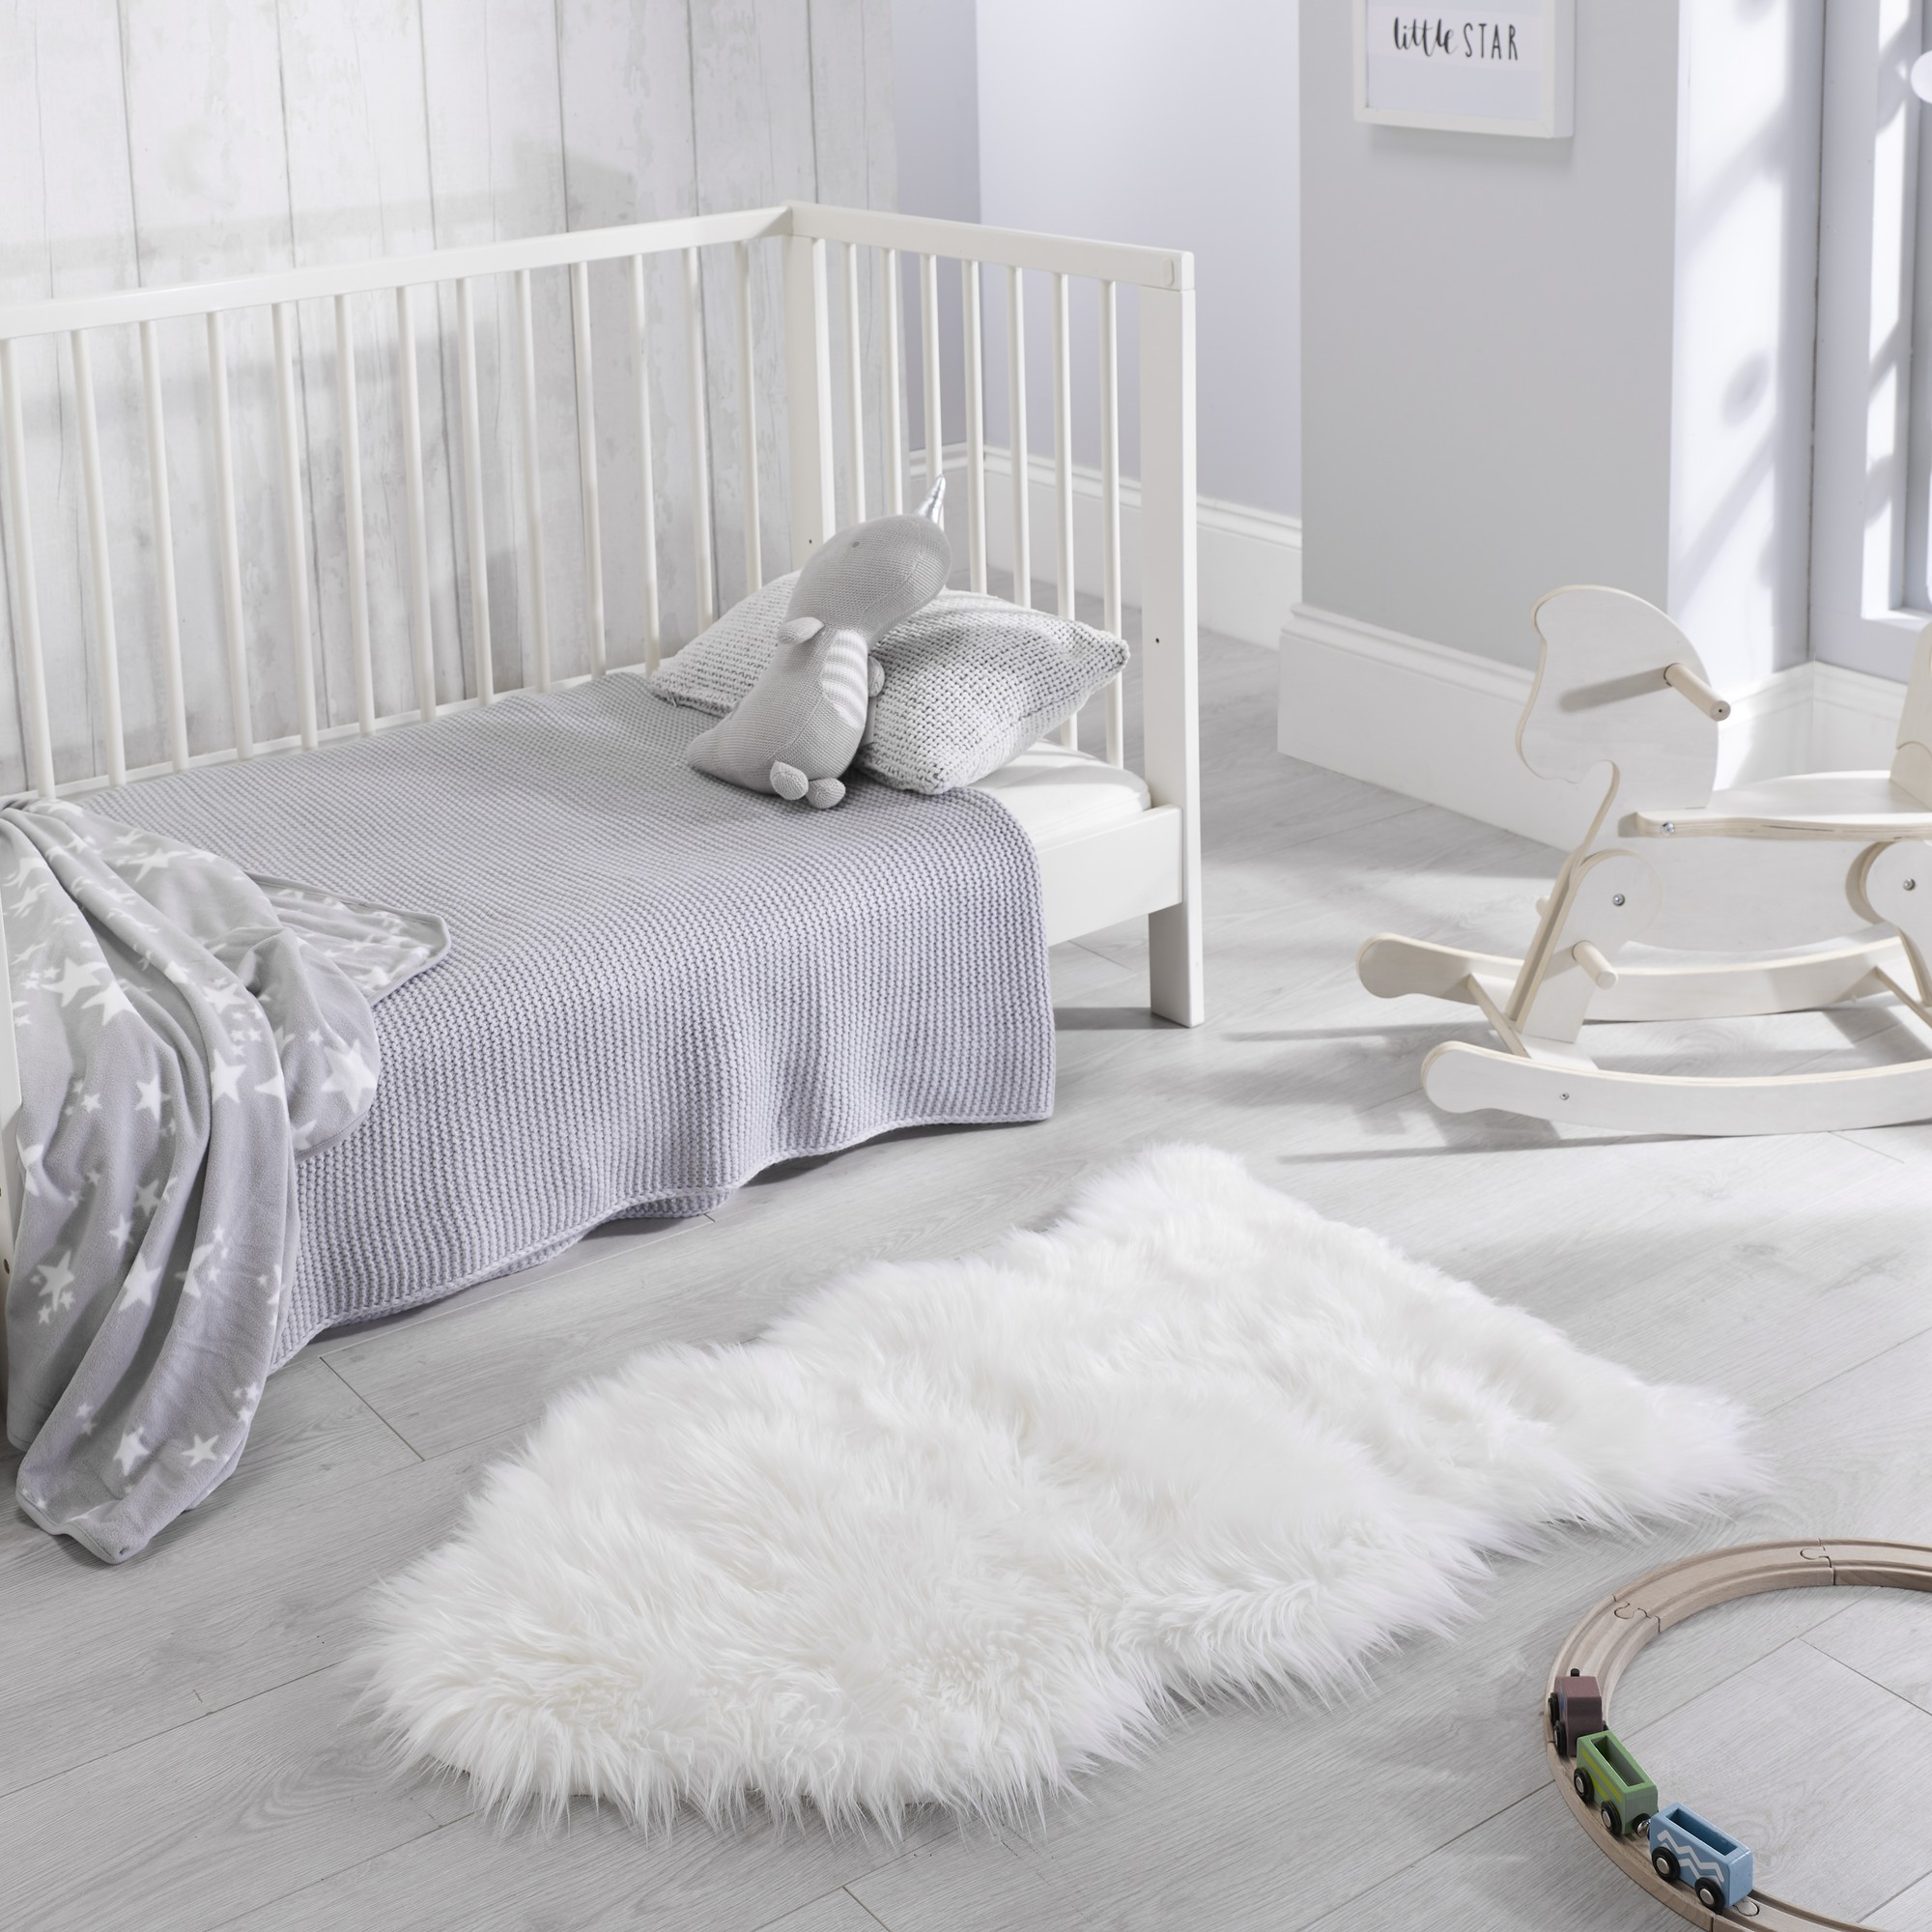 Faux Fur Rugs in White